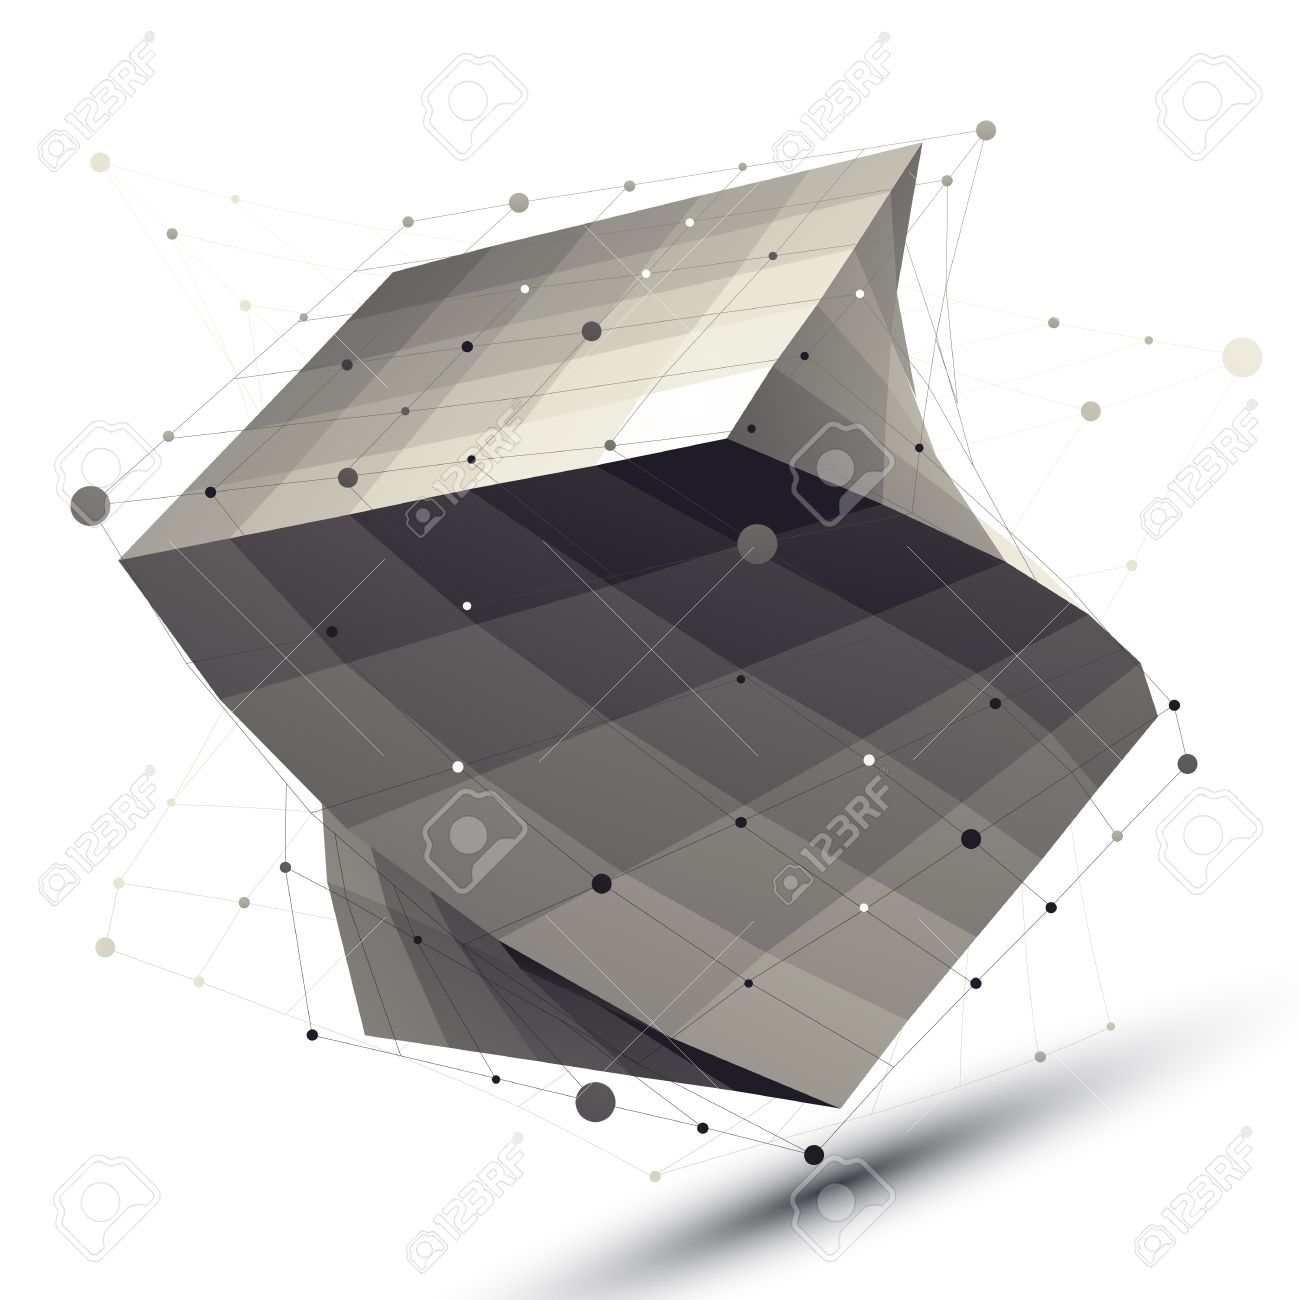 Abstract deformed vector squared object with lines mesh isolated on white background. - 33631310